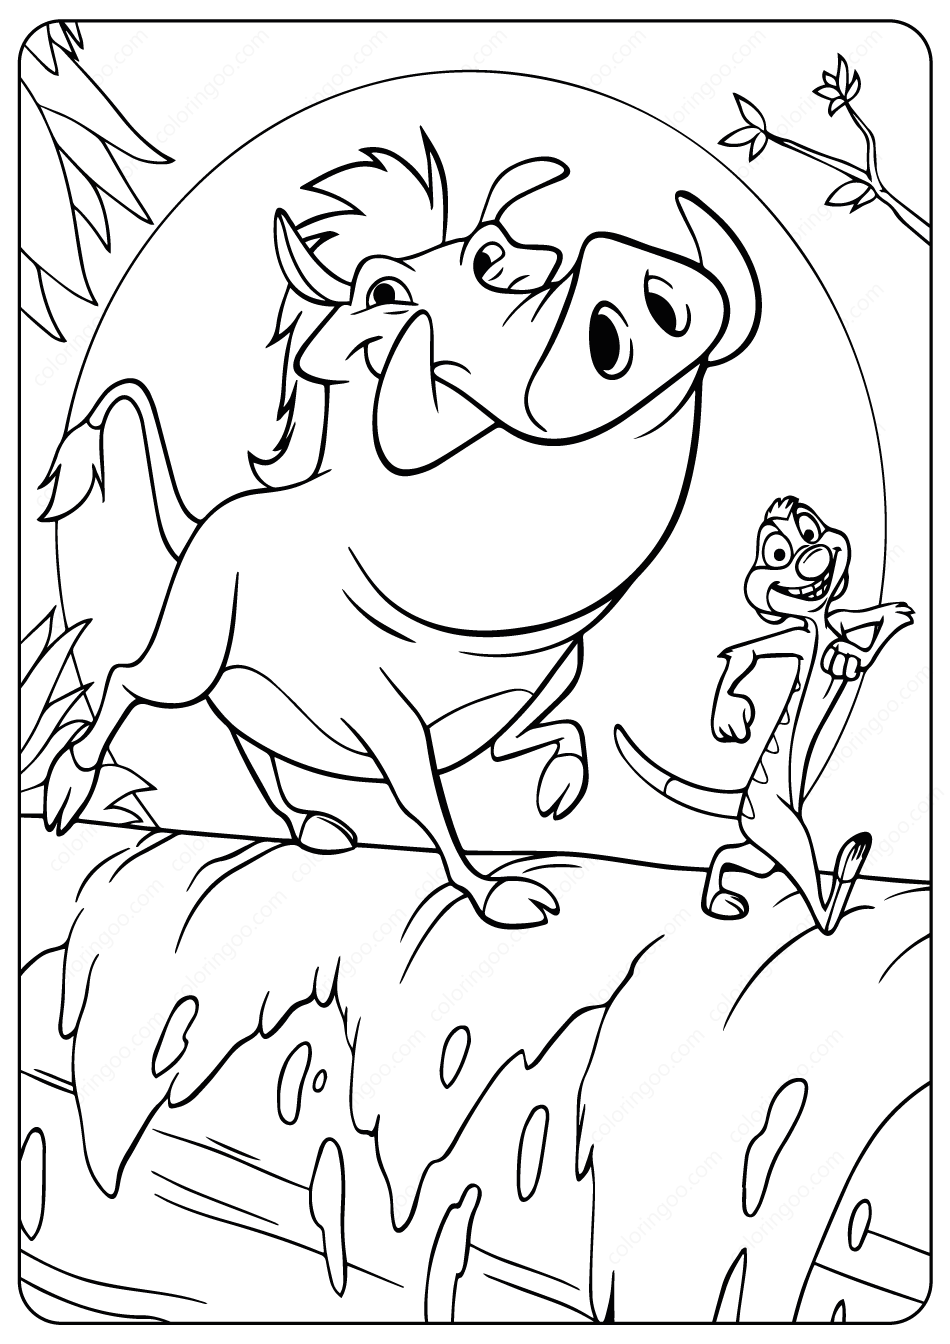 The Lion King Timon And Pumbaa Coloring Pages I 2020